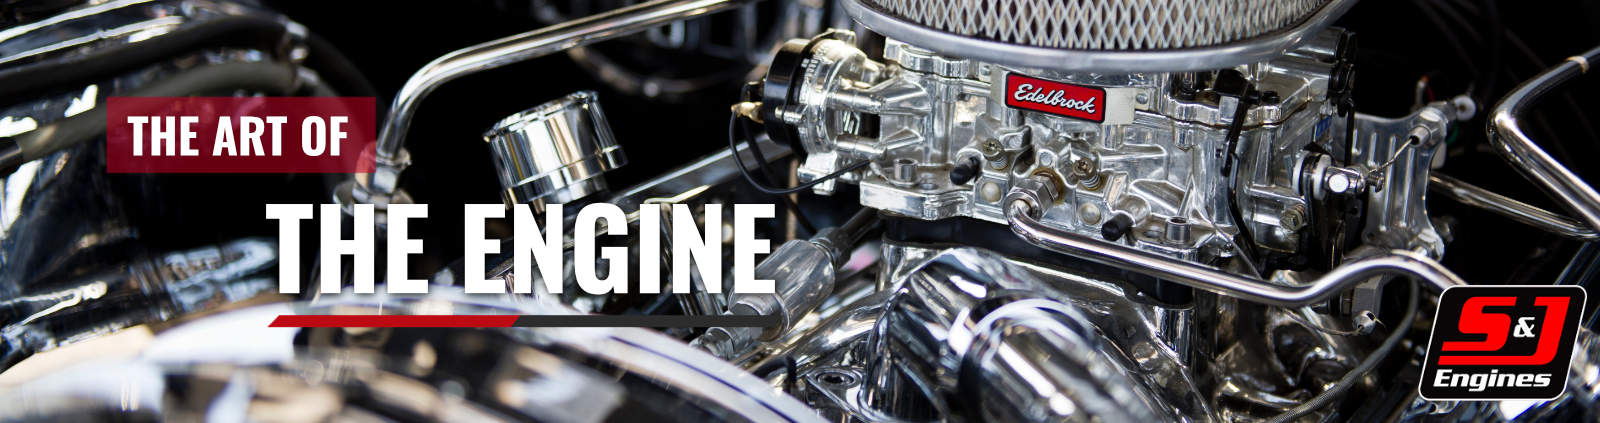 ART OF THE ENGINE